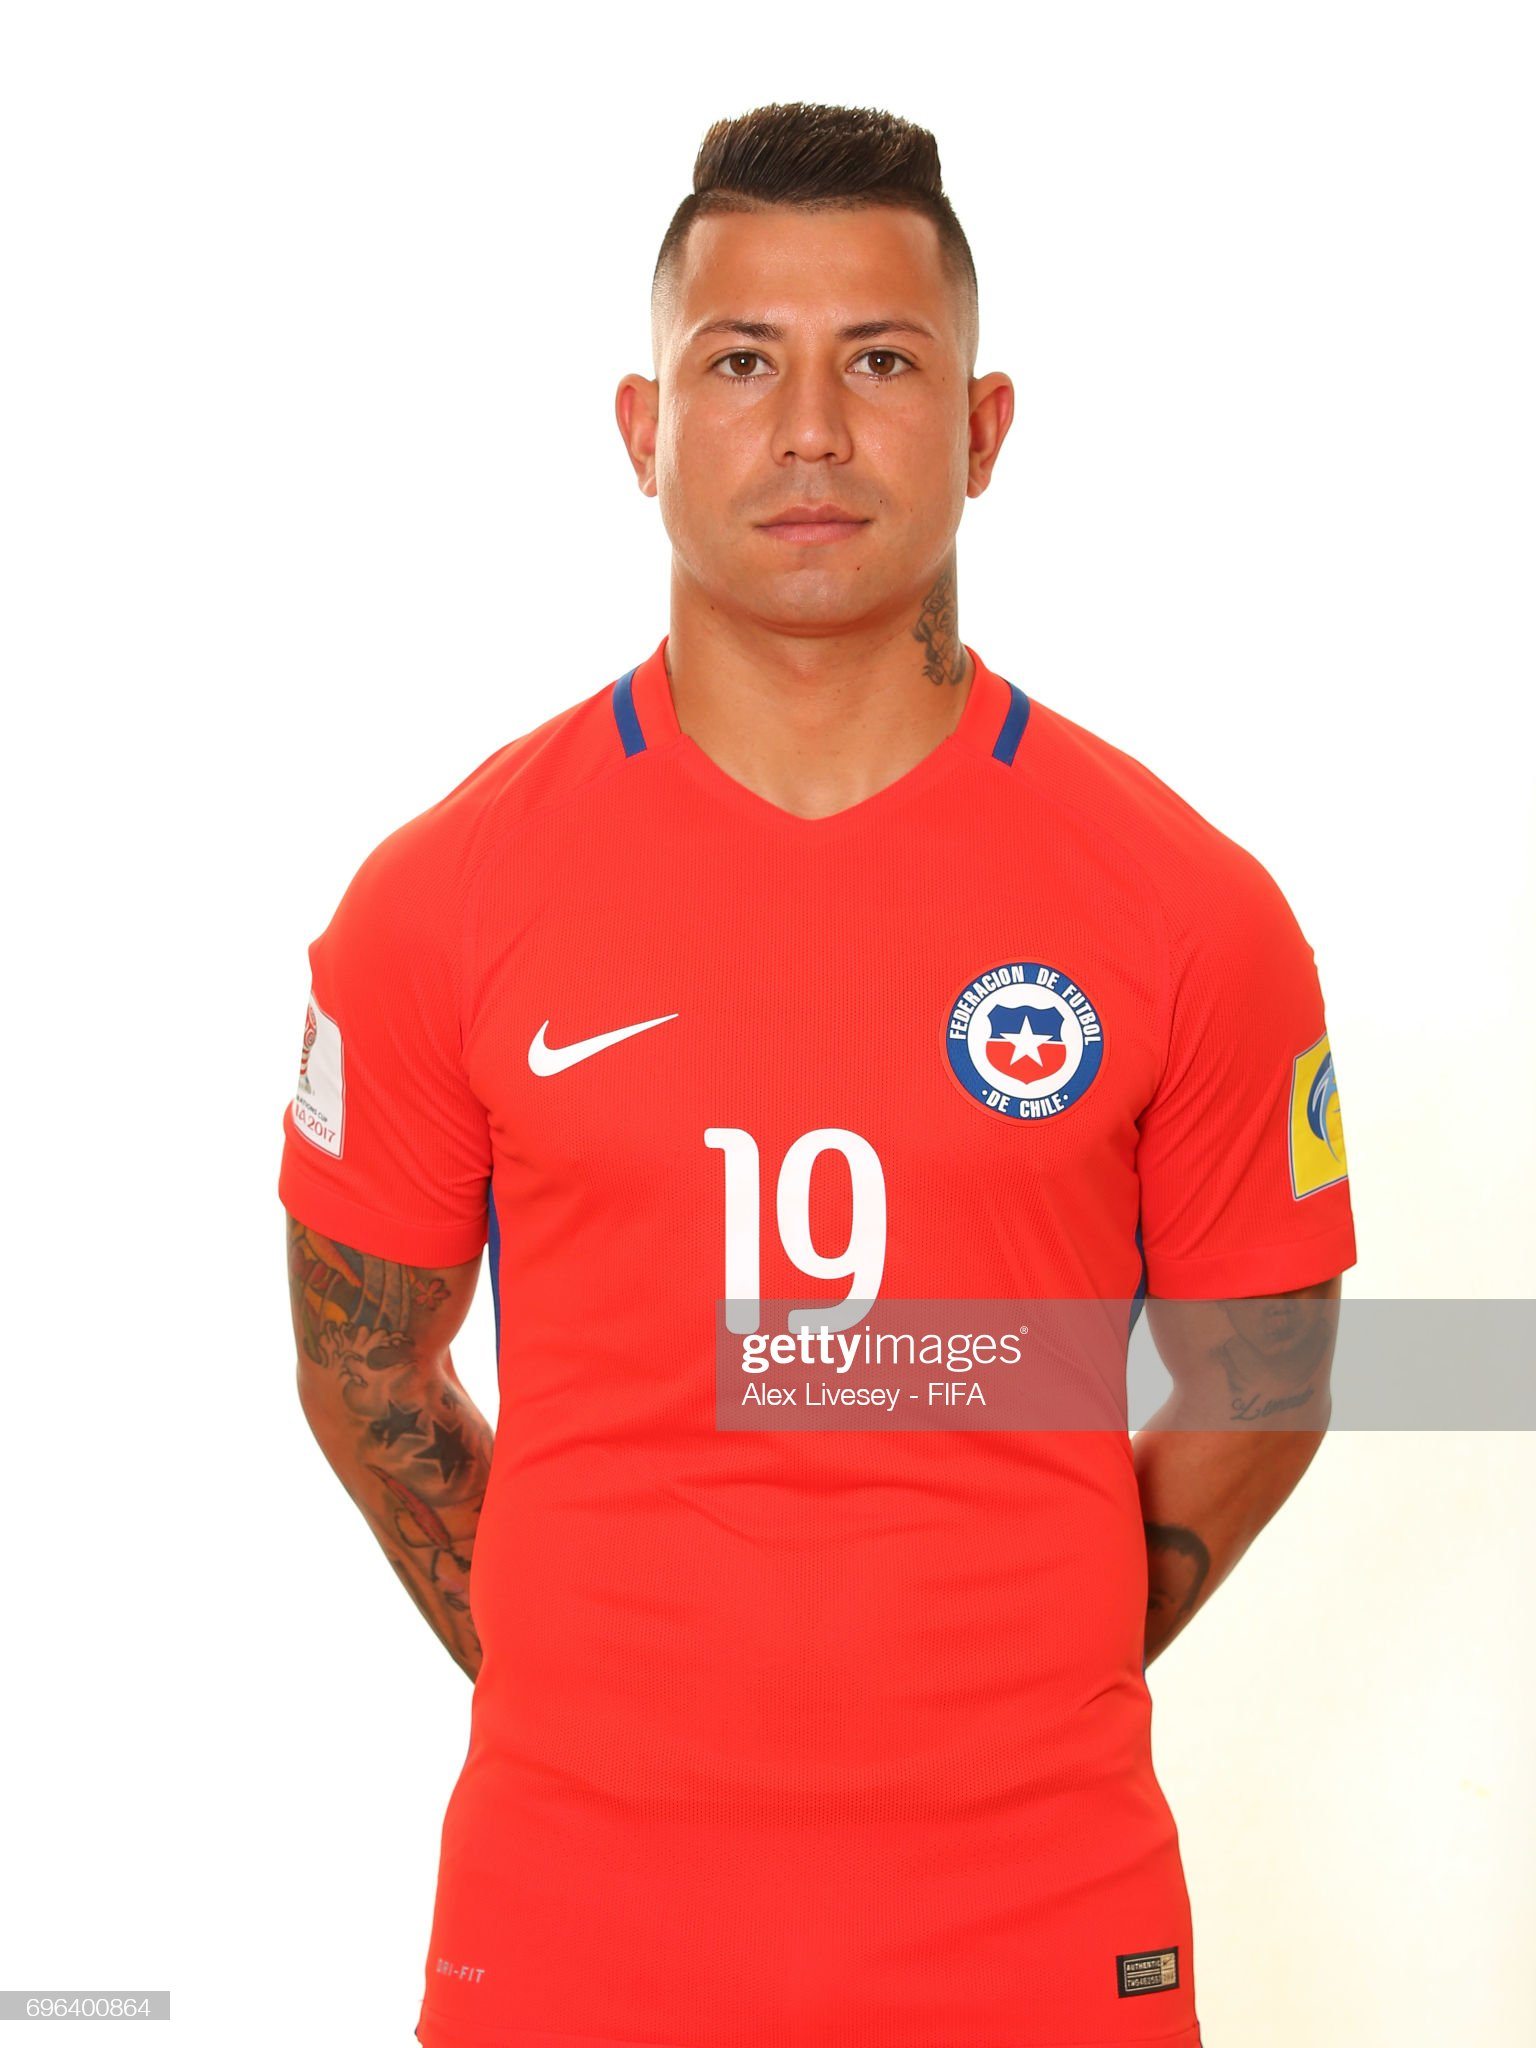 https://media.gettyimages.com/photos/leonardo-valencia-of-chile-during-a-portrait-session-ahead-of-the-picture-id696400864?s=2048x2048